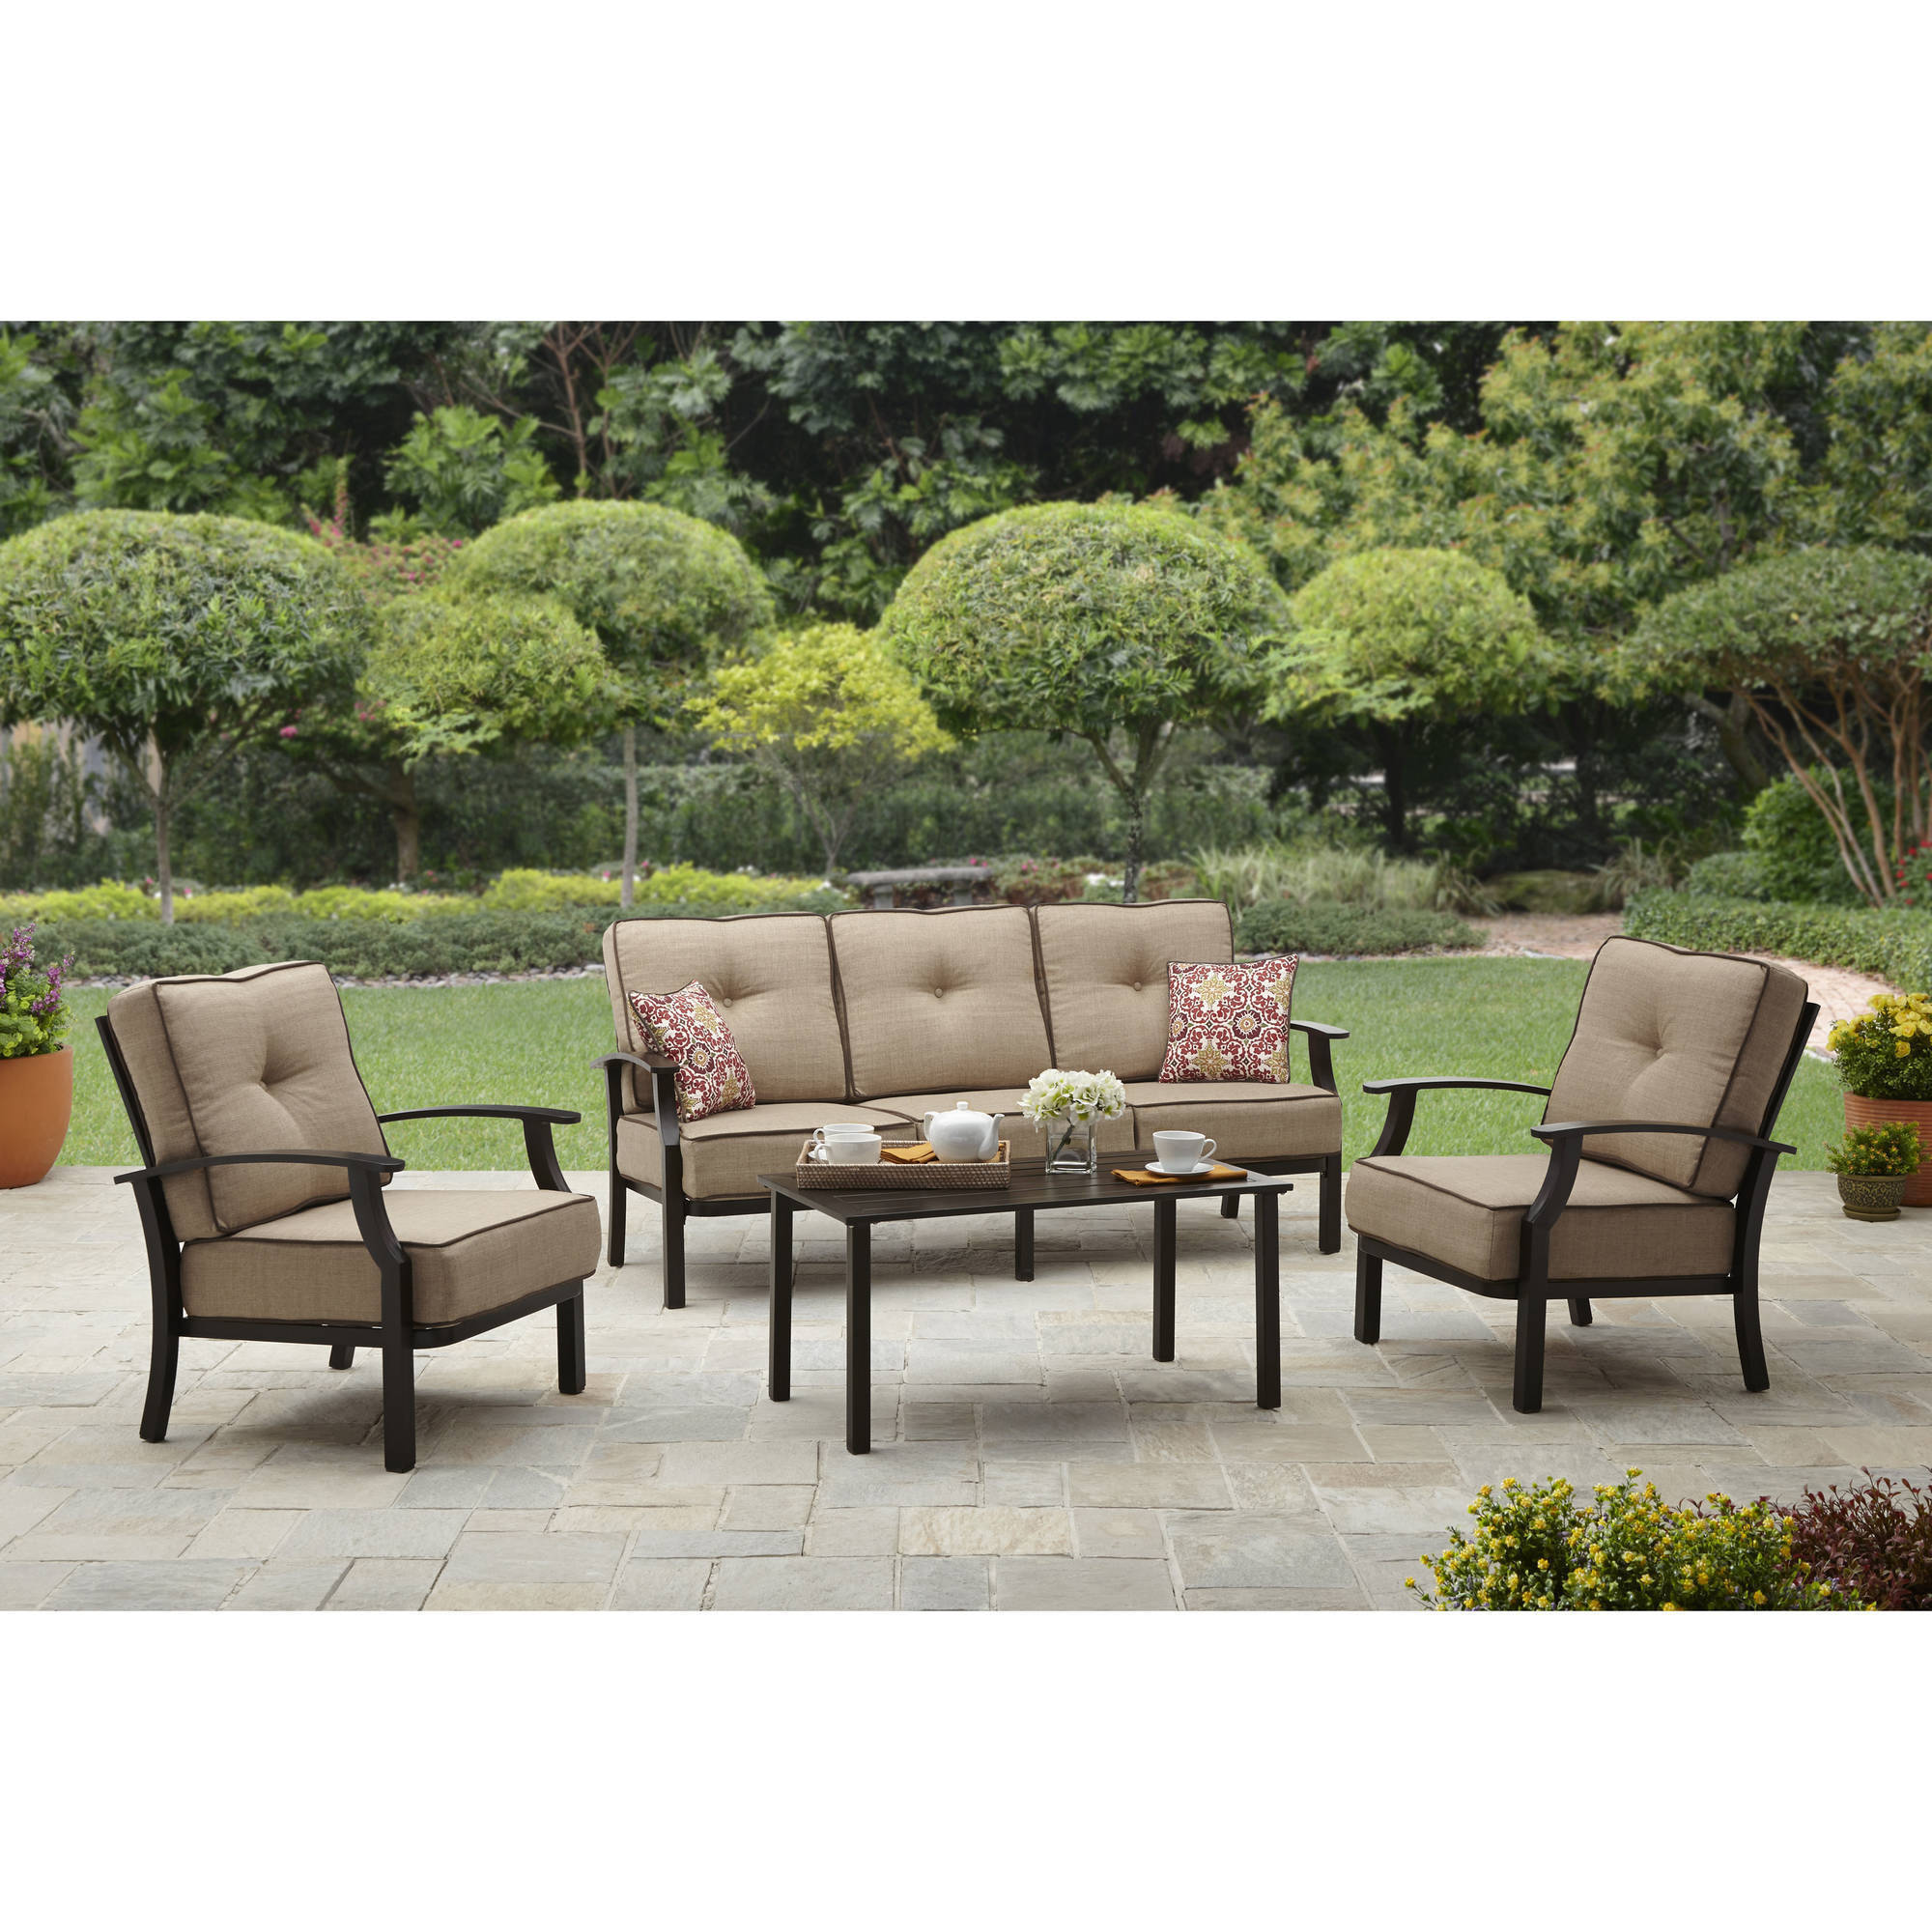 Epic Mainstays Ragan Meadow II Piece Outdoor Sectional Sofa Seats Walmart